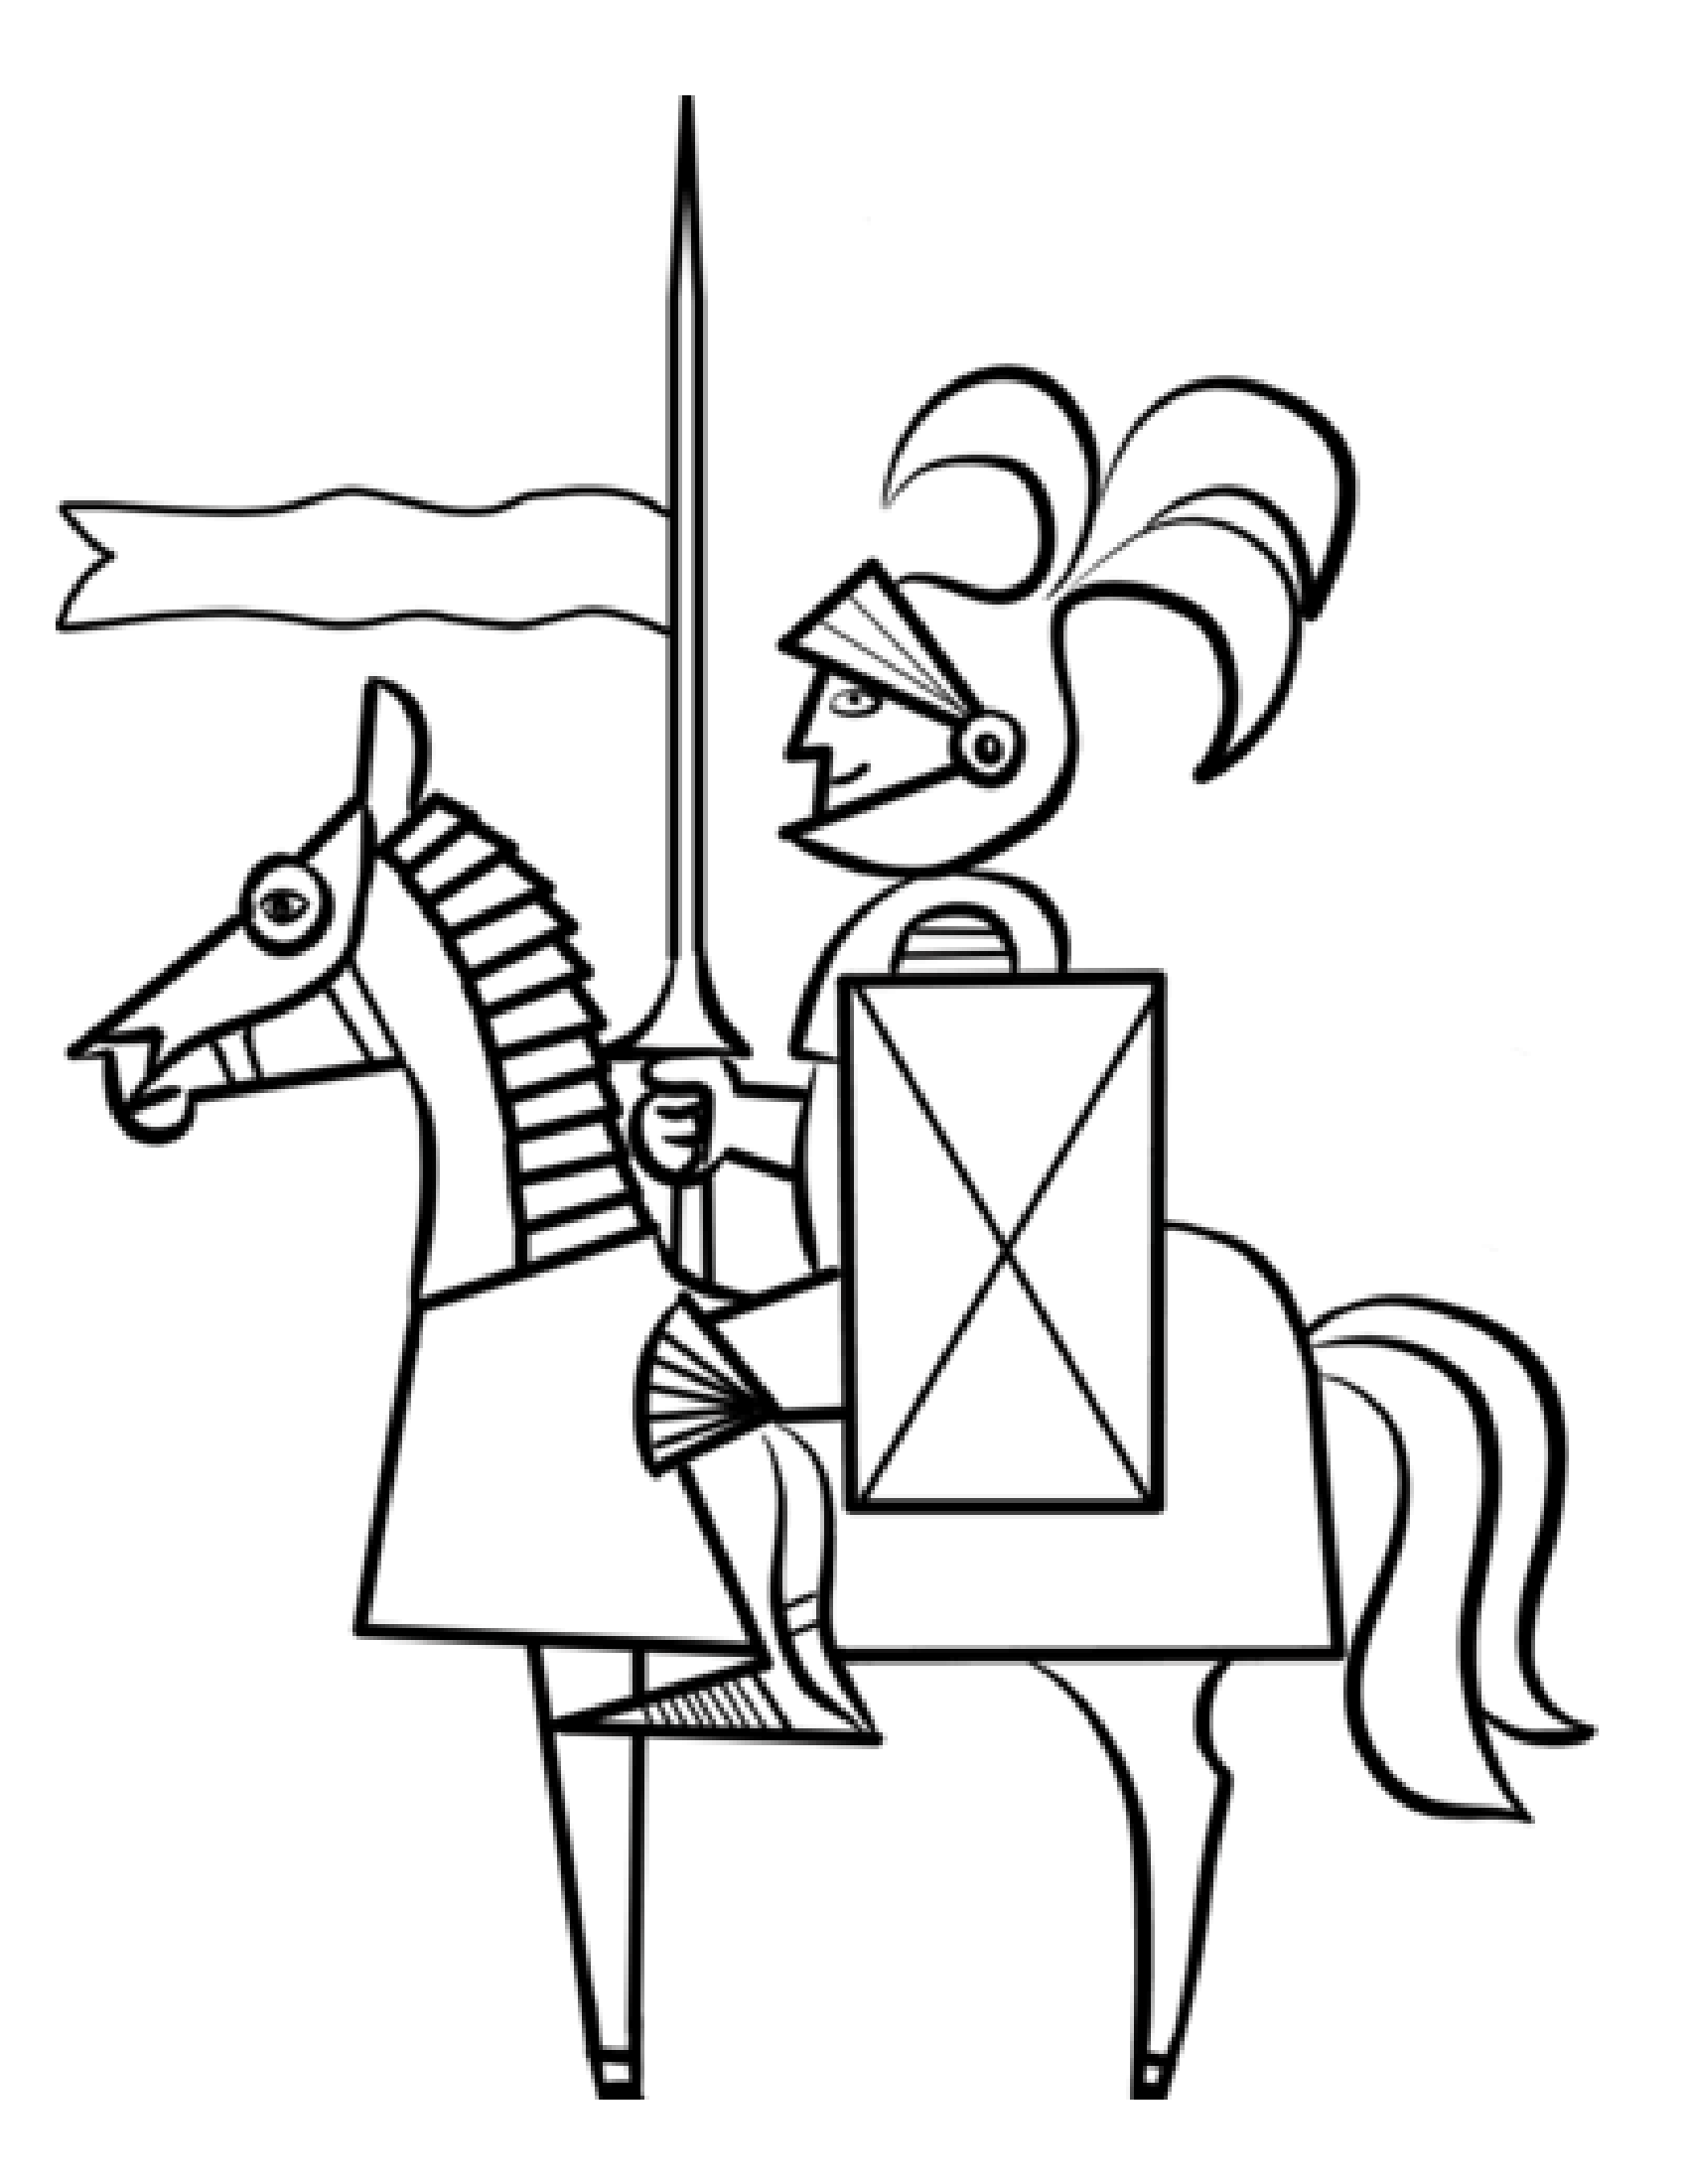 knight on horse coloring page free coloring page coloring adult knight middle age on horse coloring on page knight